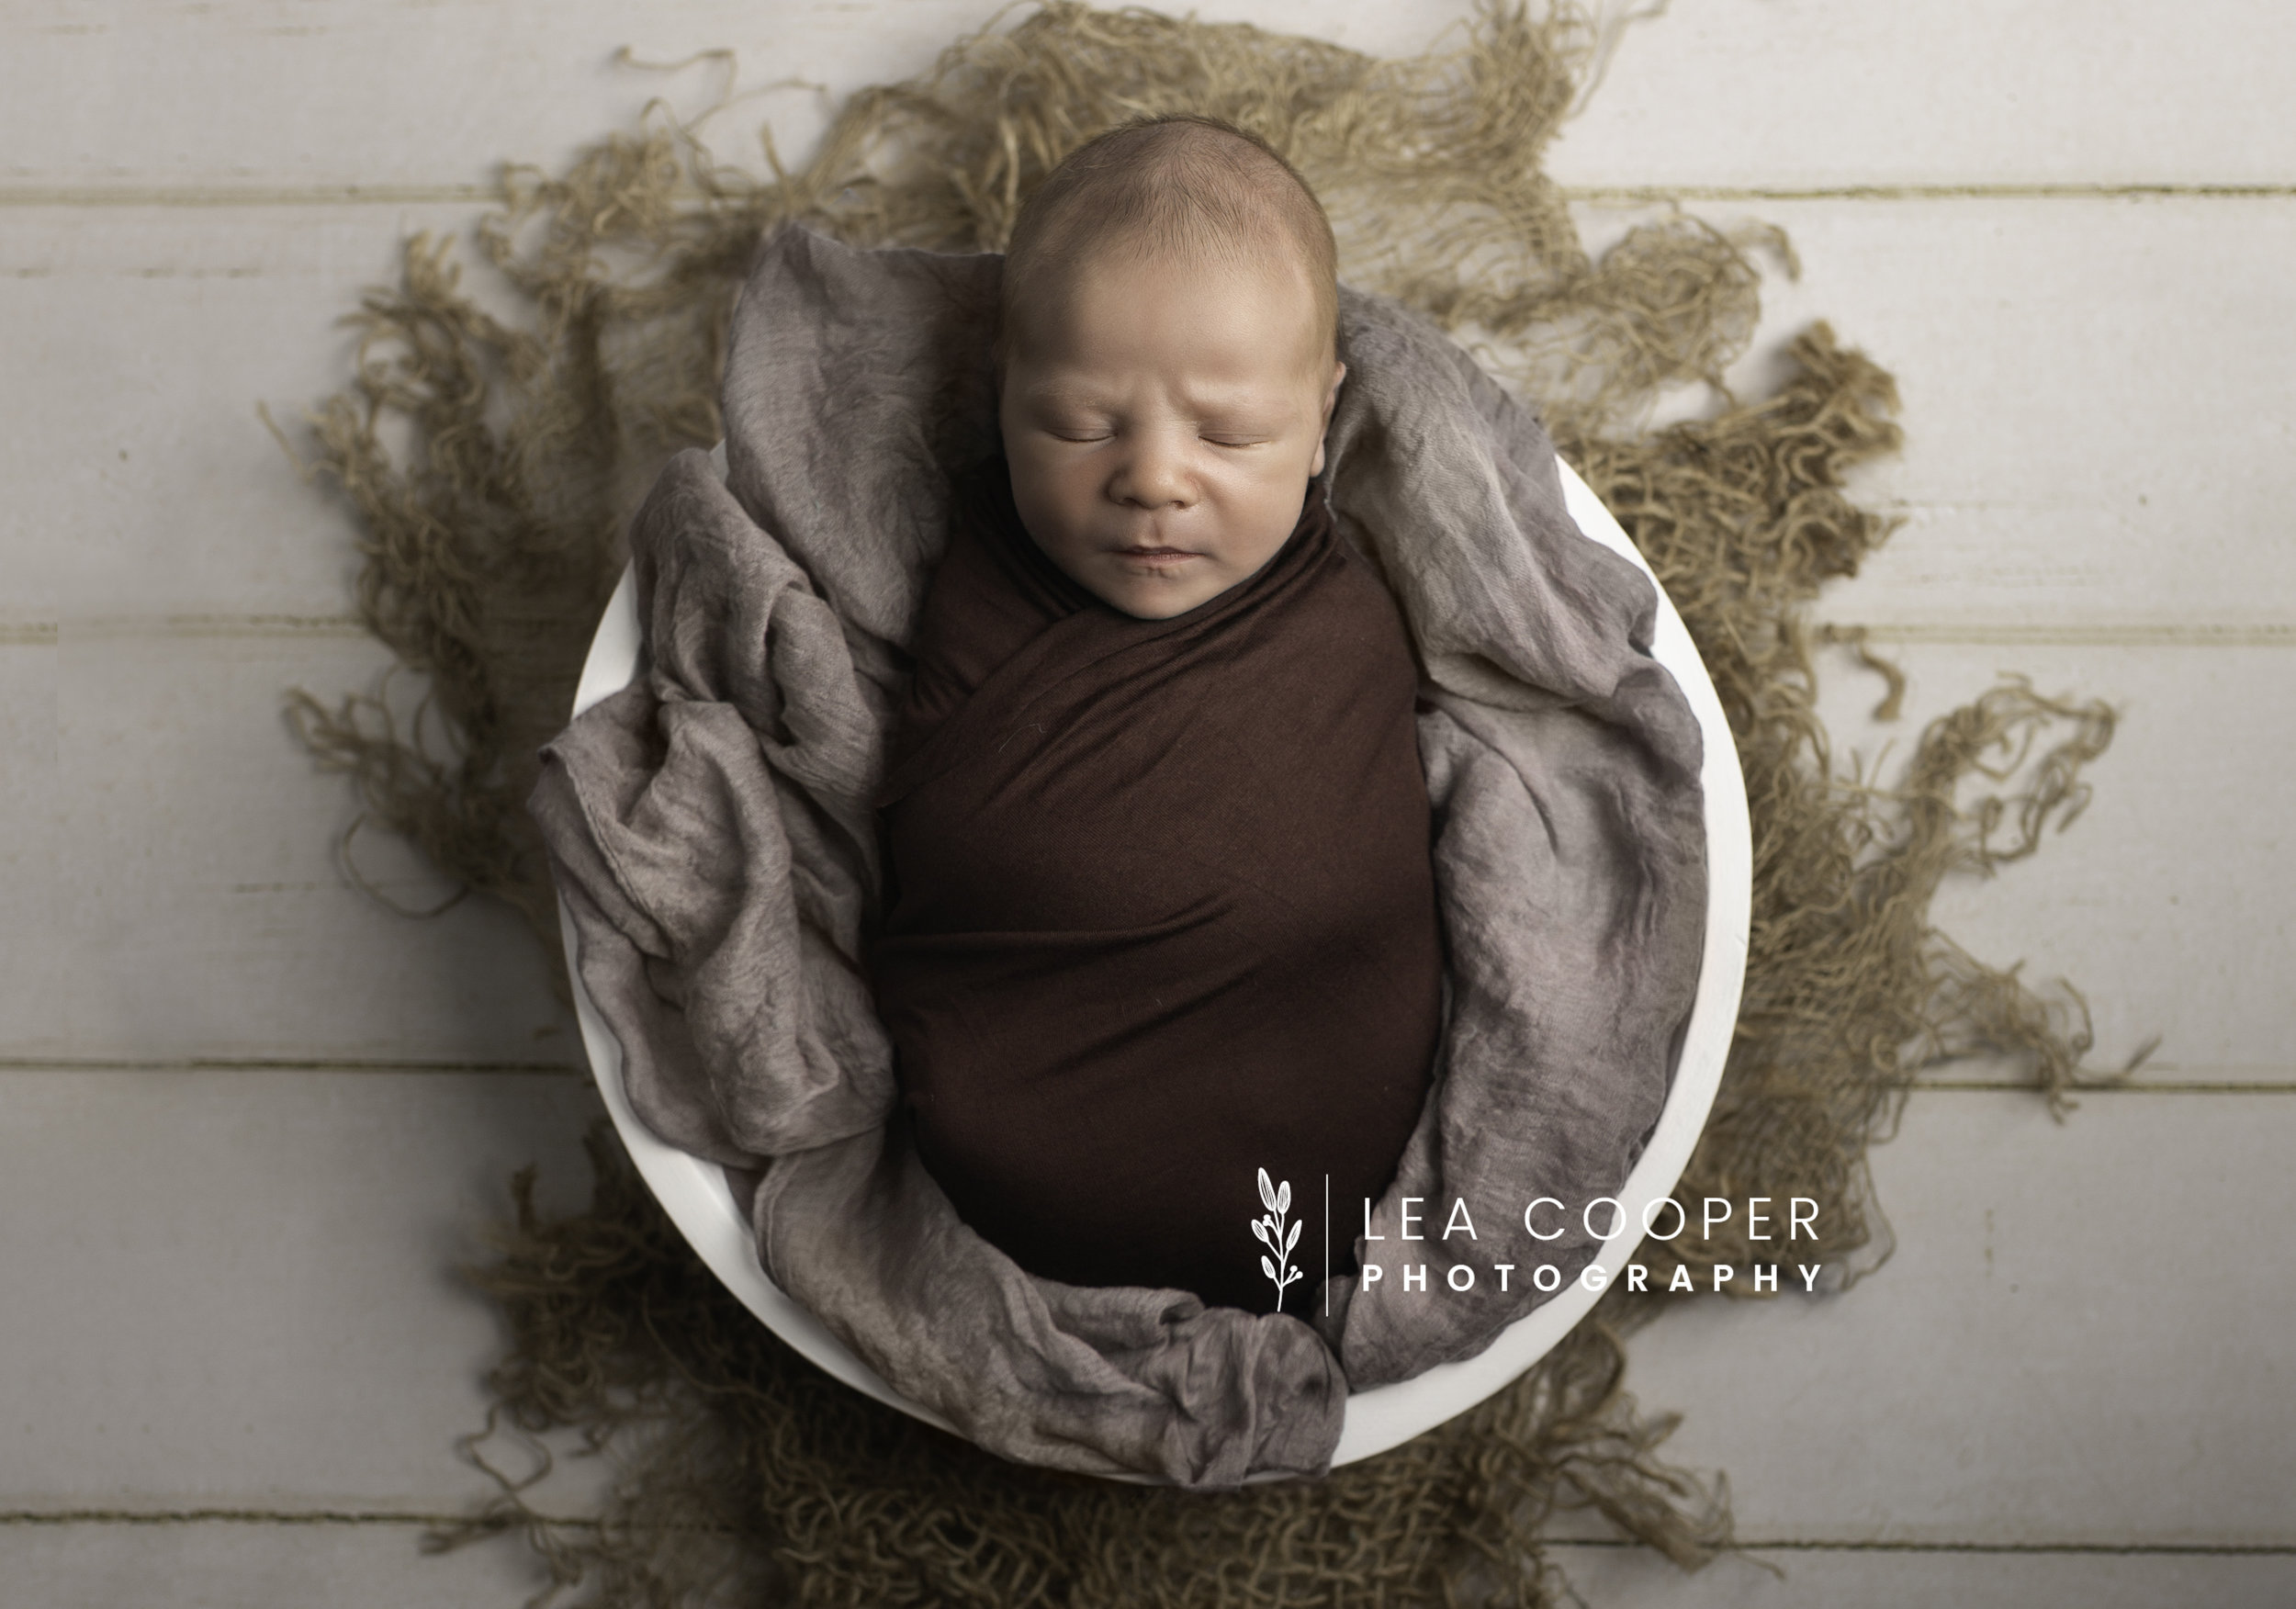 Elliot-newborn-session-newborn-photography-willenhall-photographer-wednesbury-baby-photography-wolverhampton-baby-session-2.jpg